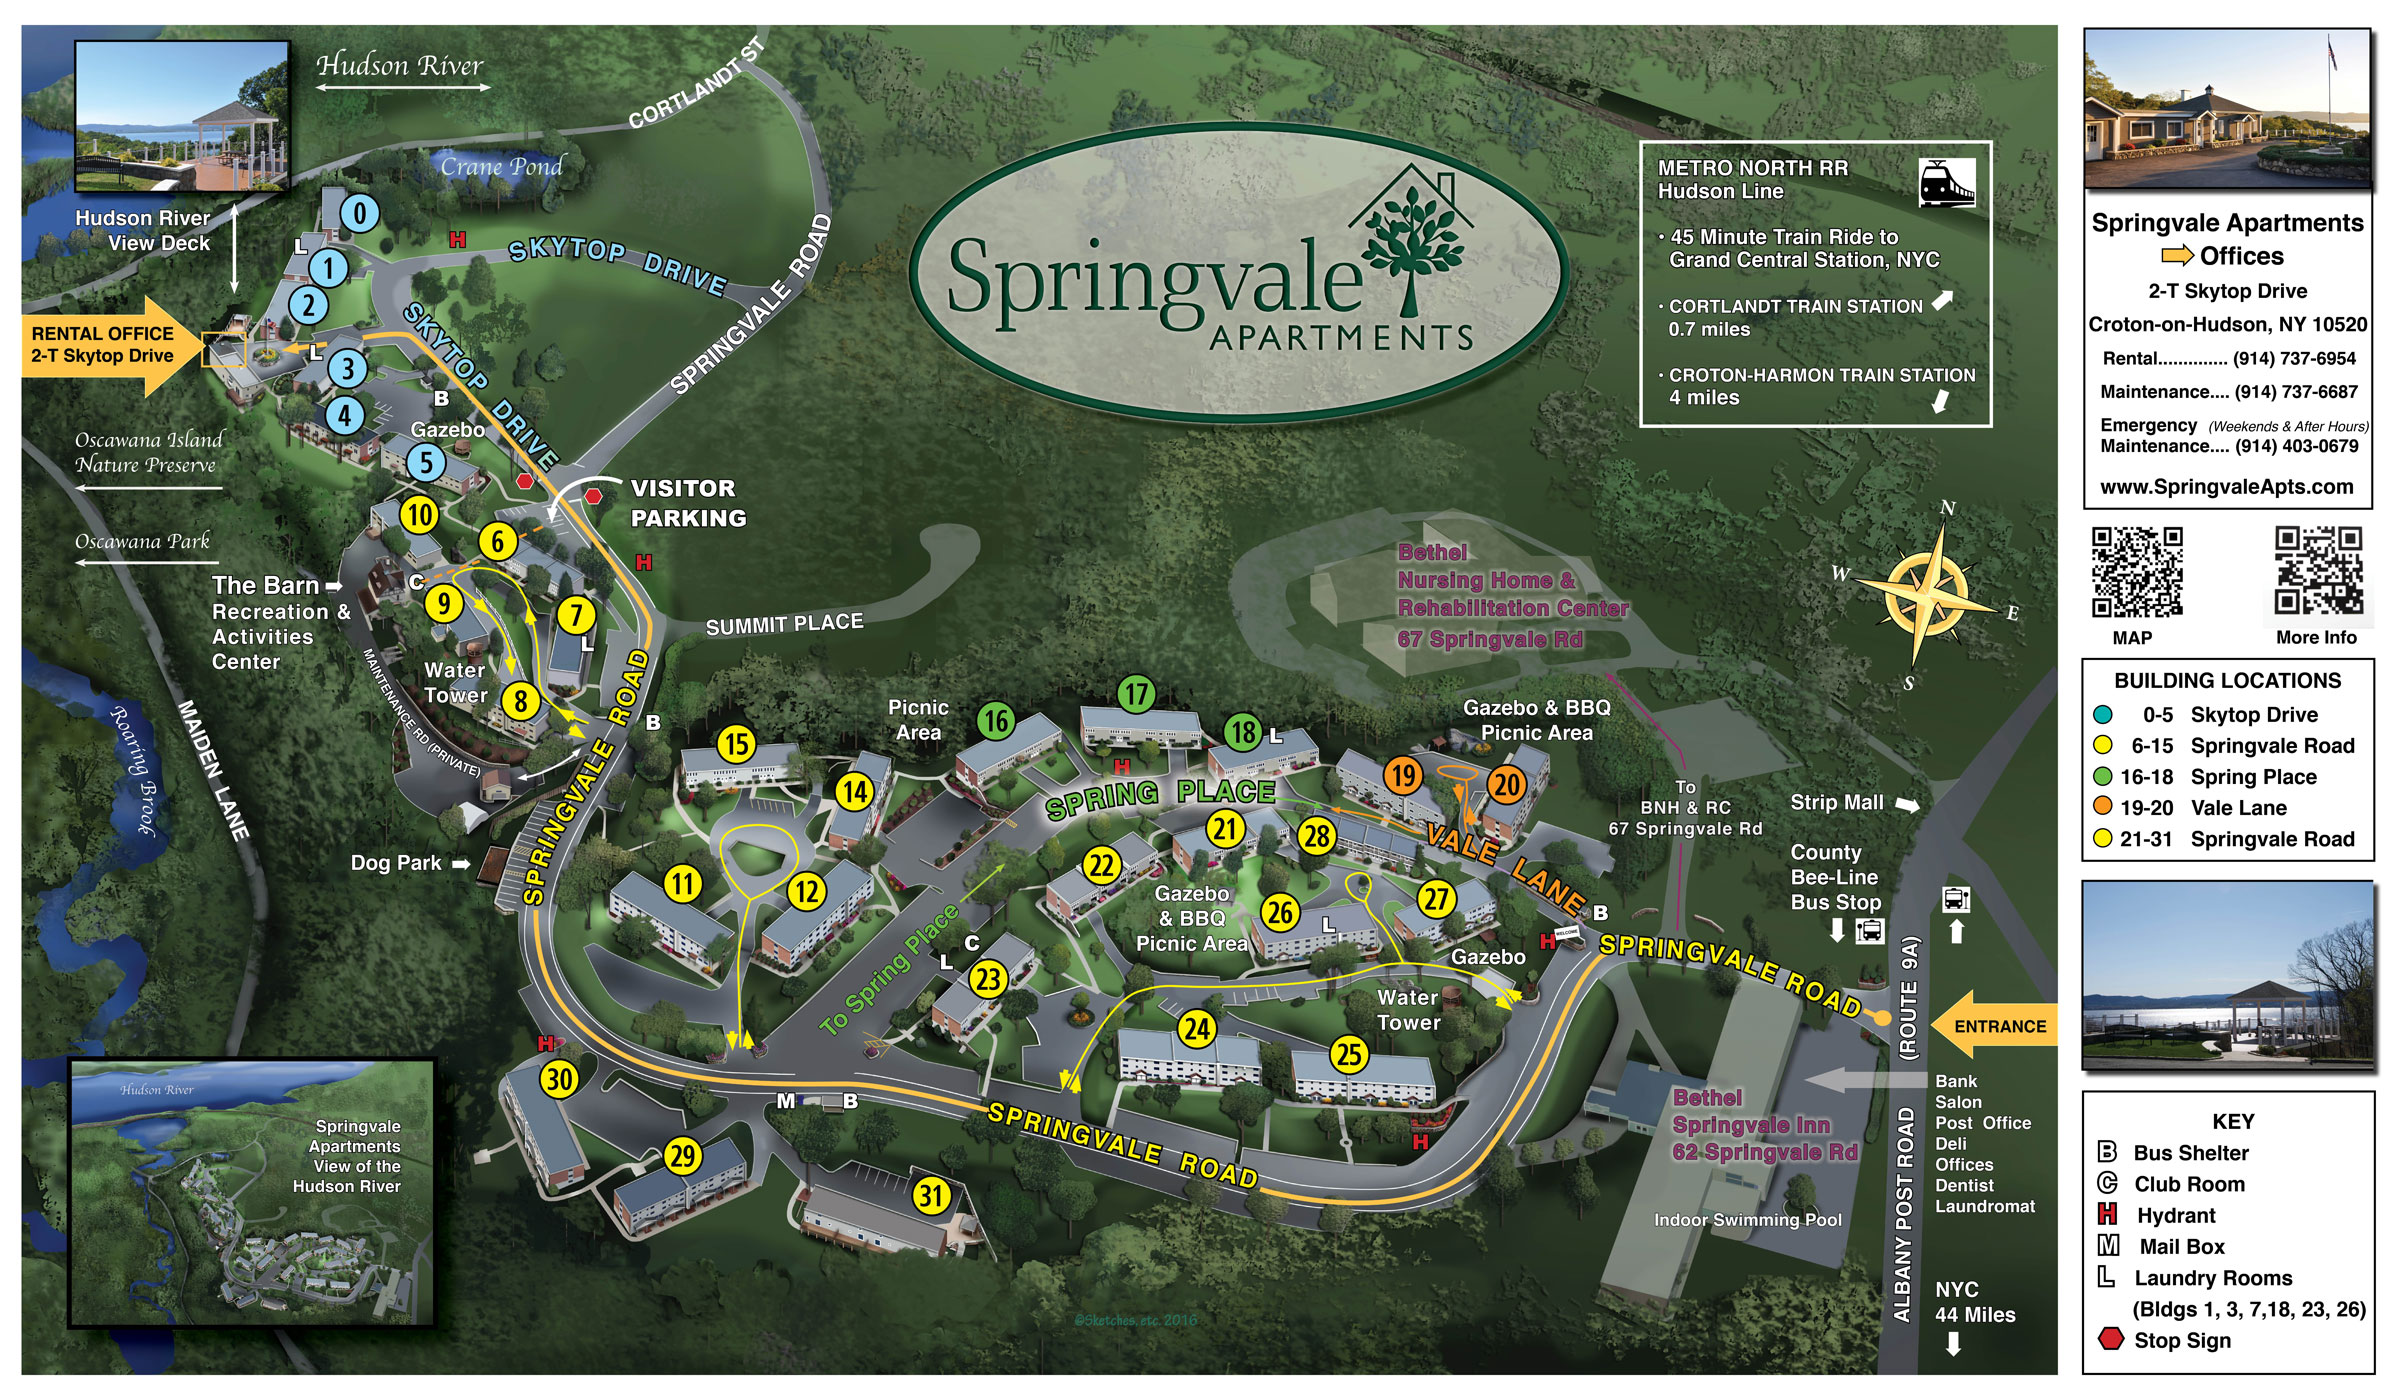 Awesome Site Map Of Springvale Apartments View Larger Map